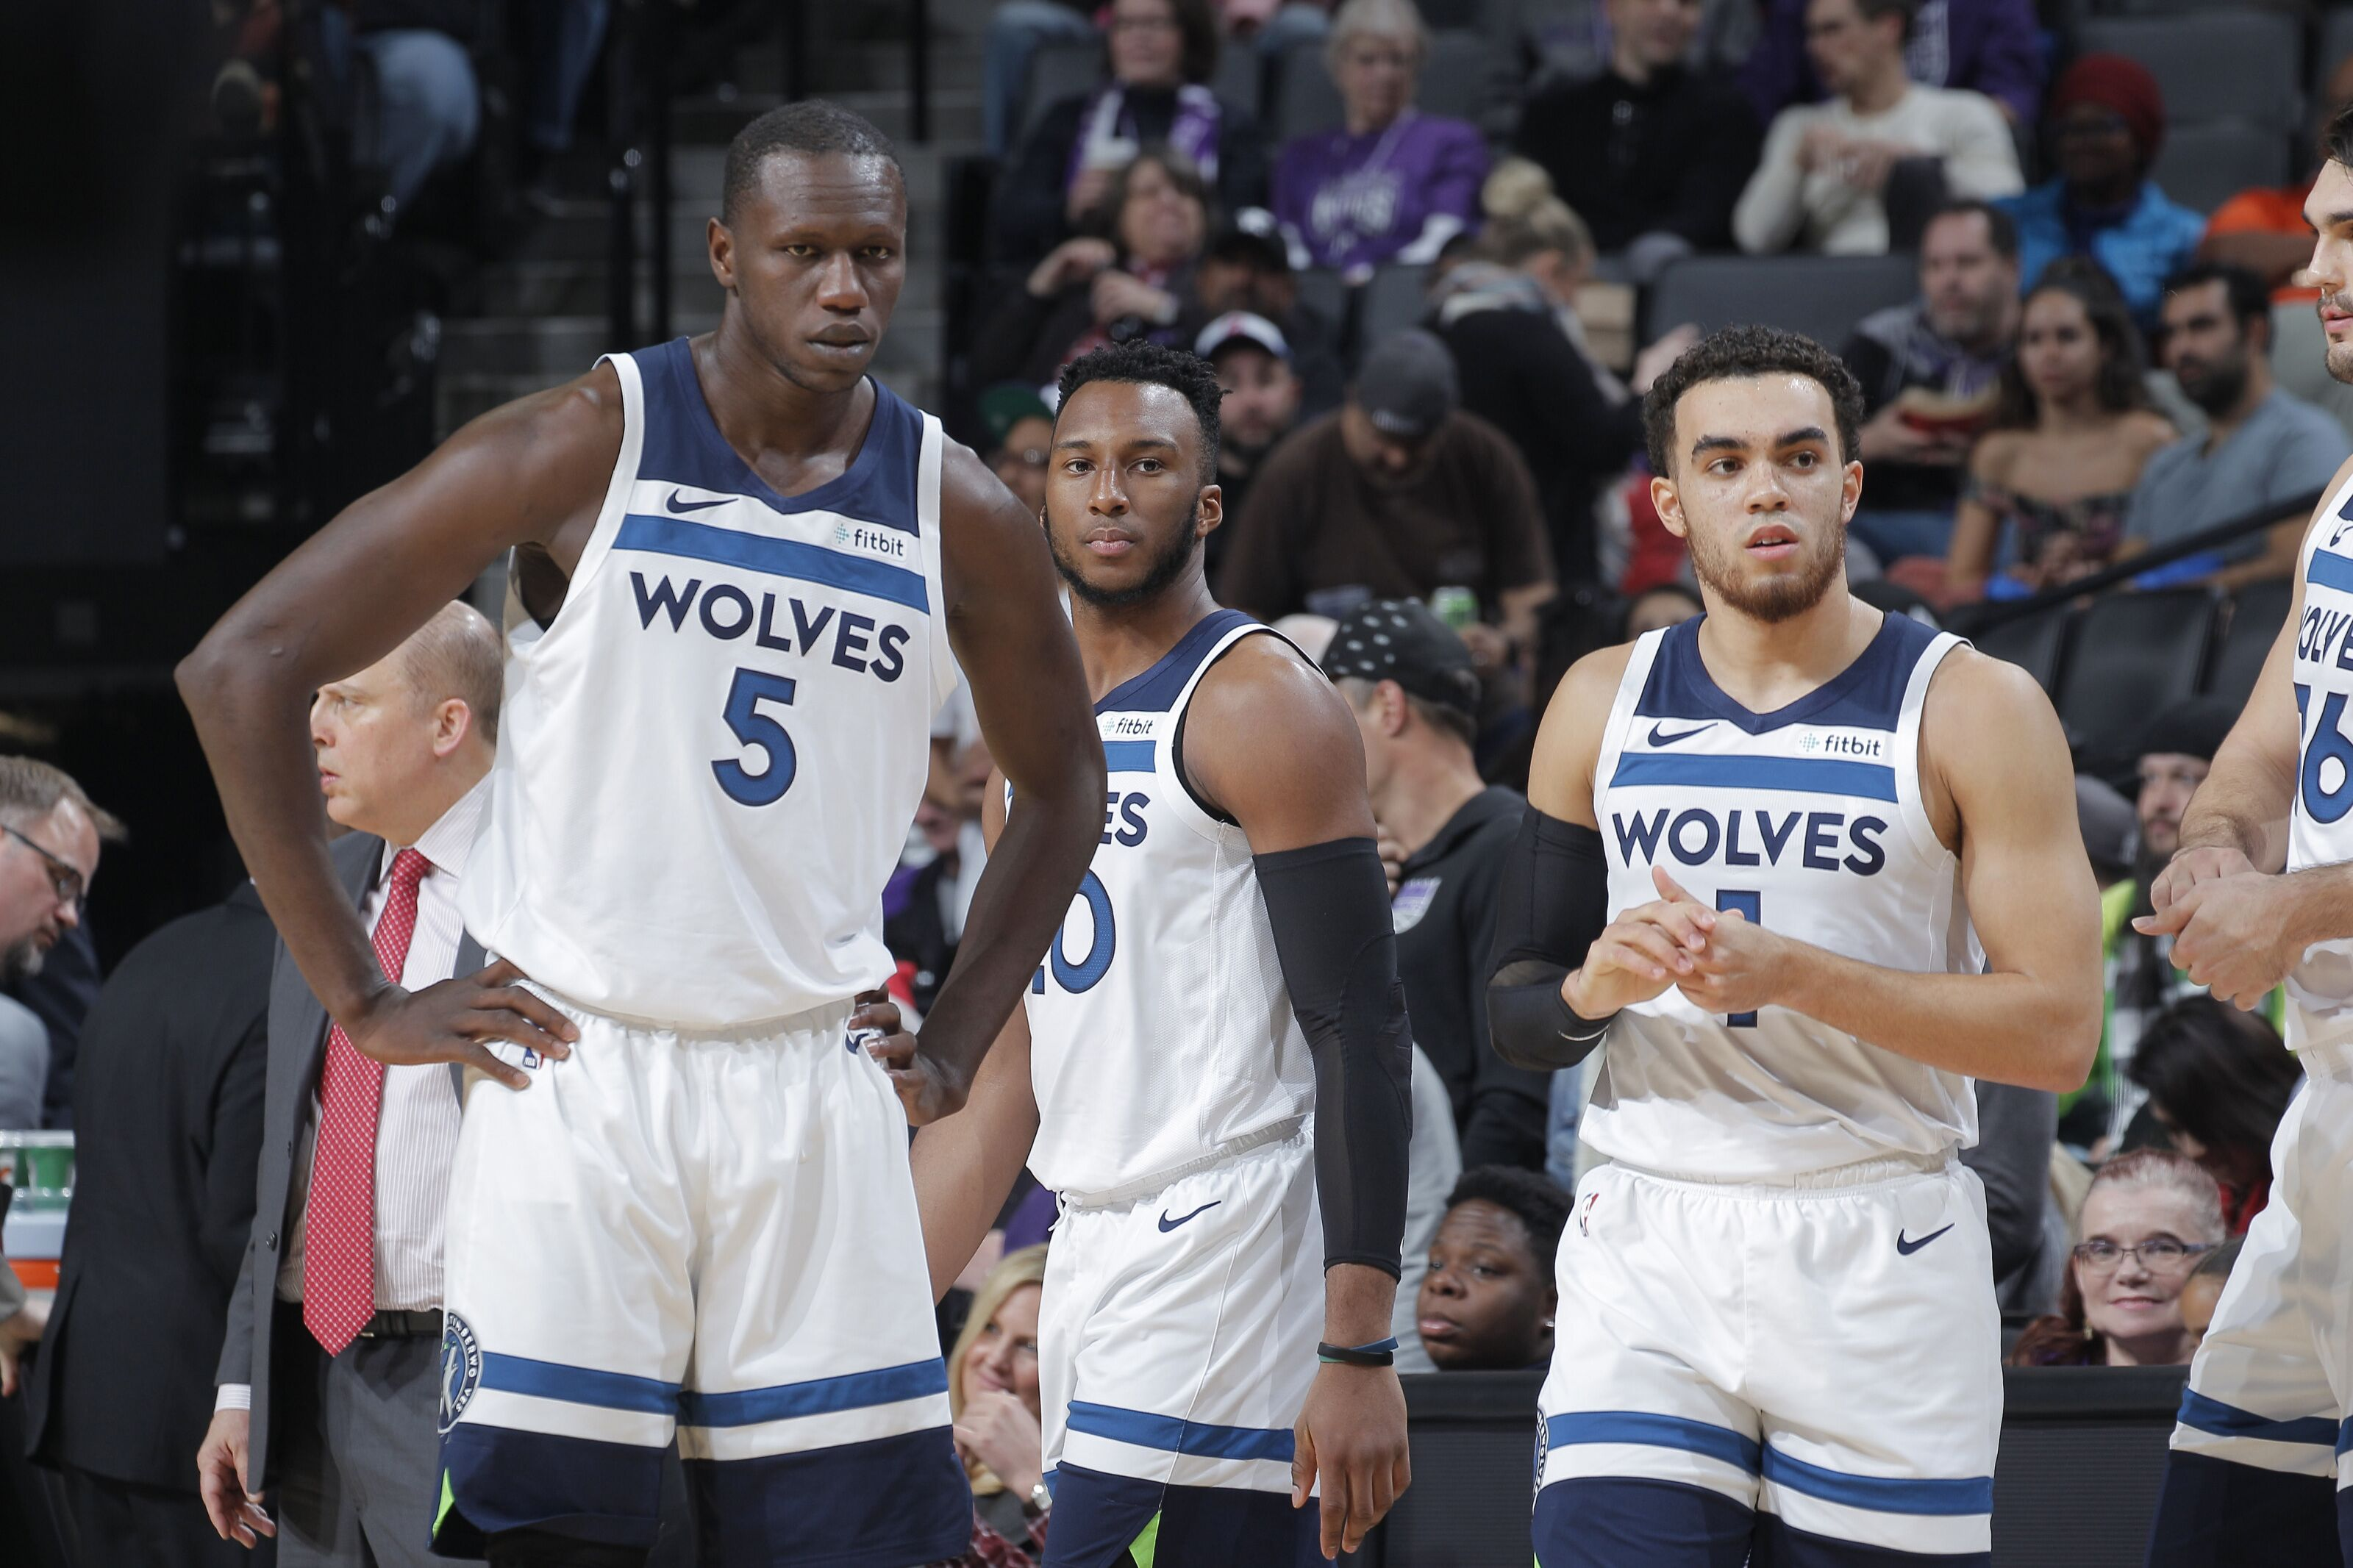 b512b8c9c4f Minnesota Timberwolves  Gorgui Dieng has played well as of late